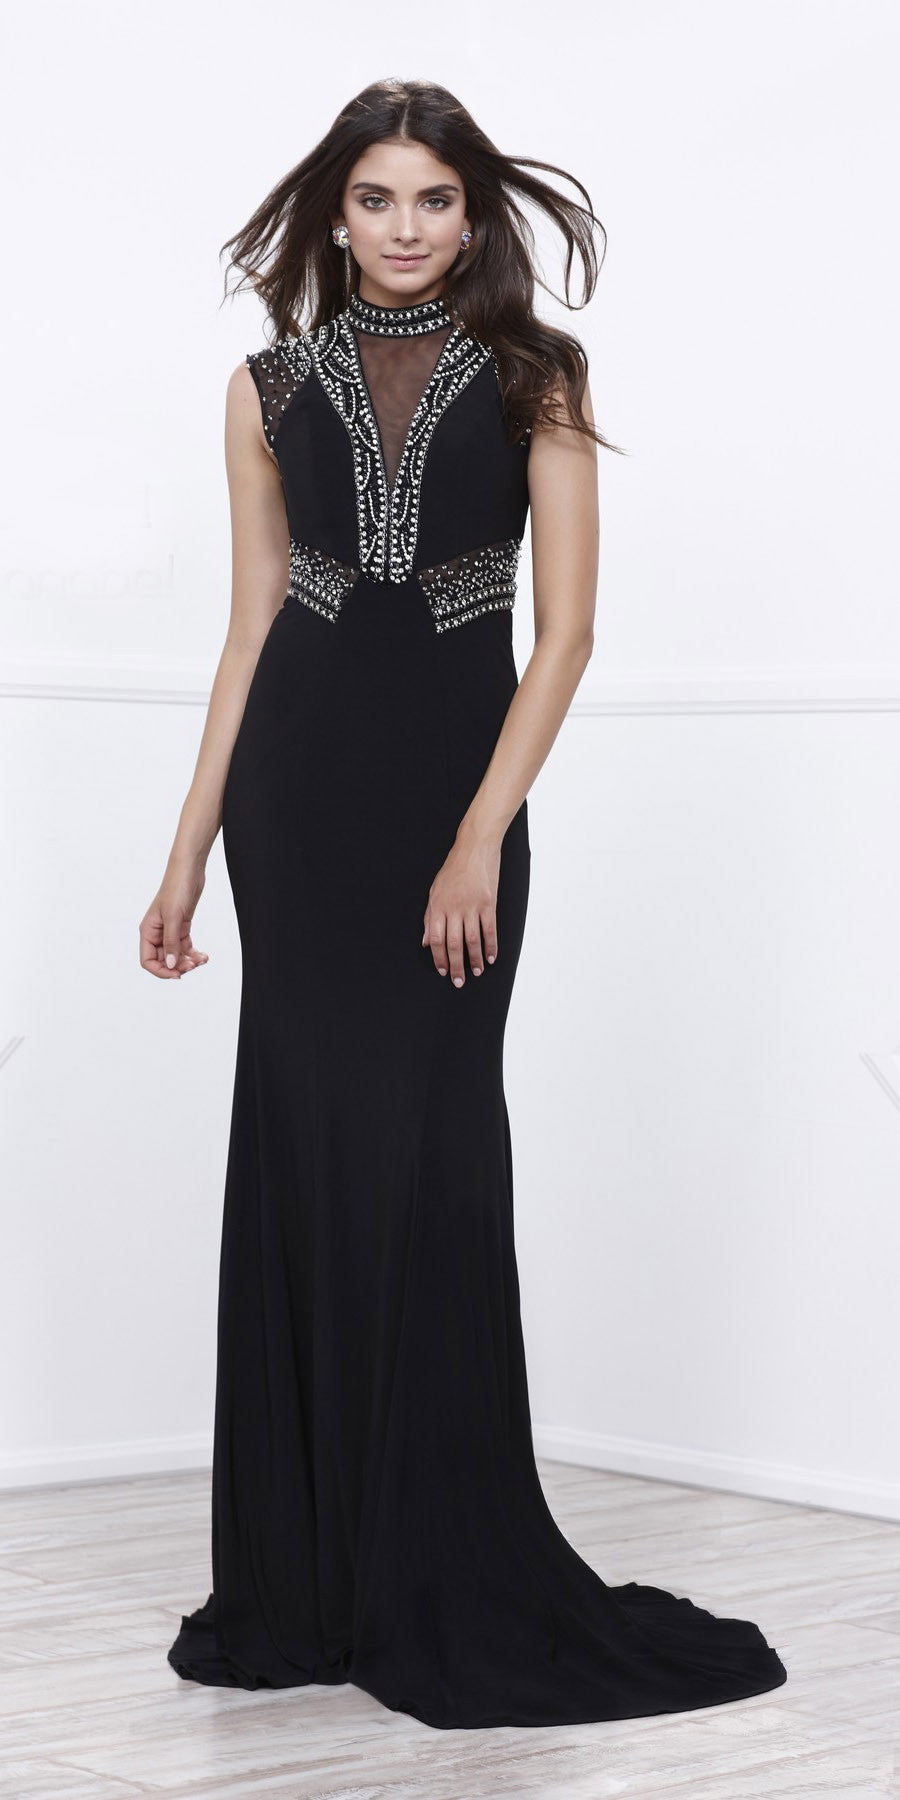 Jeweled Close-Neck Black Fit and Flare Evening Gown with Train